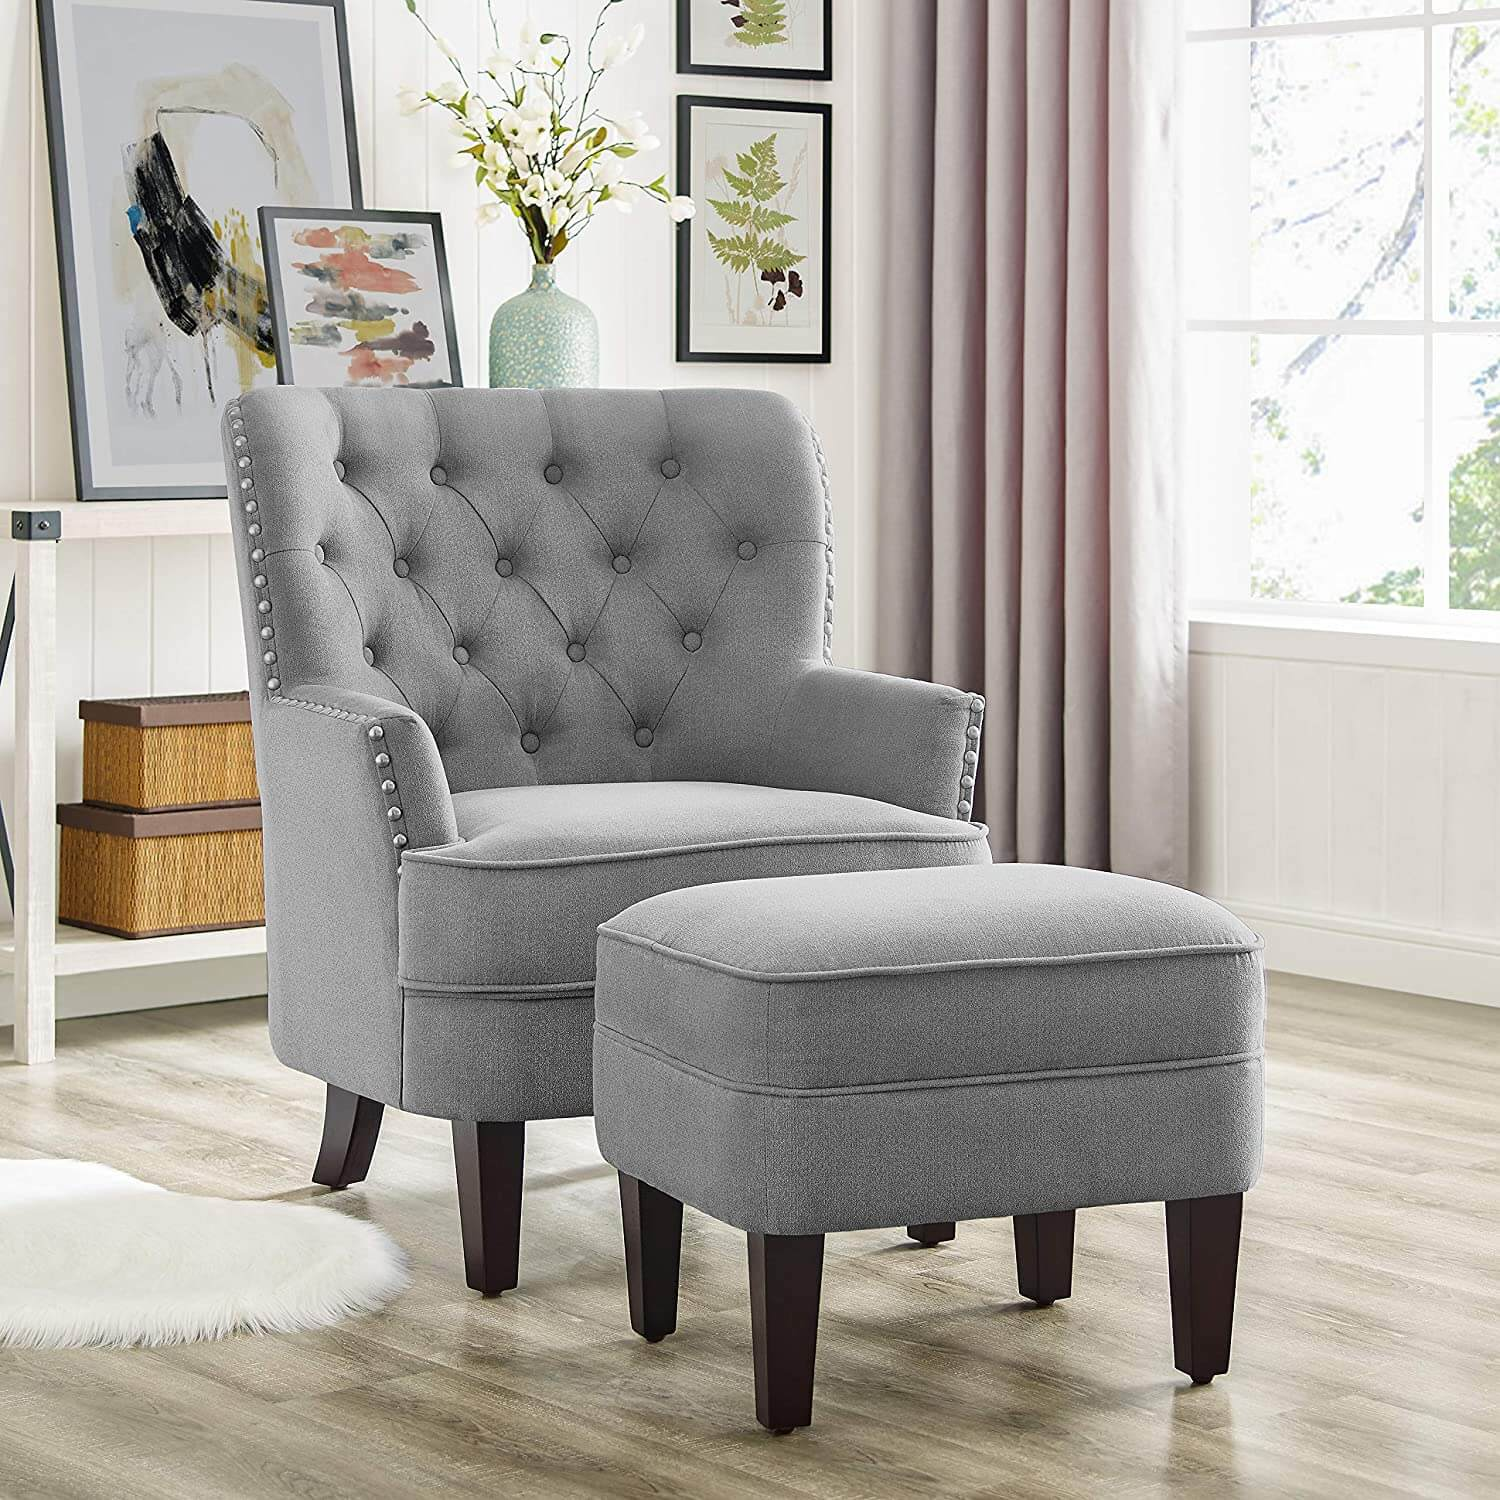 Rosevera Collection Nailhead Gustavo Chair with Ottoman